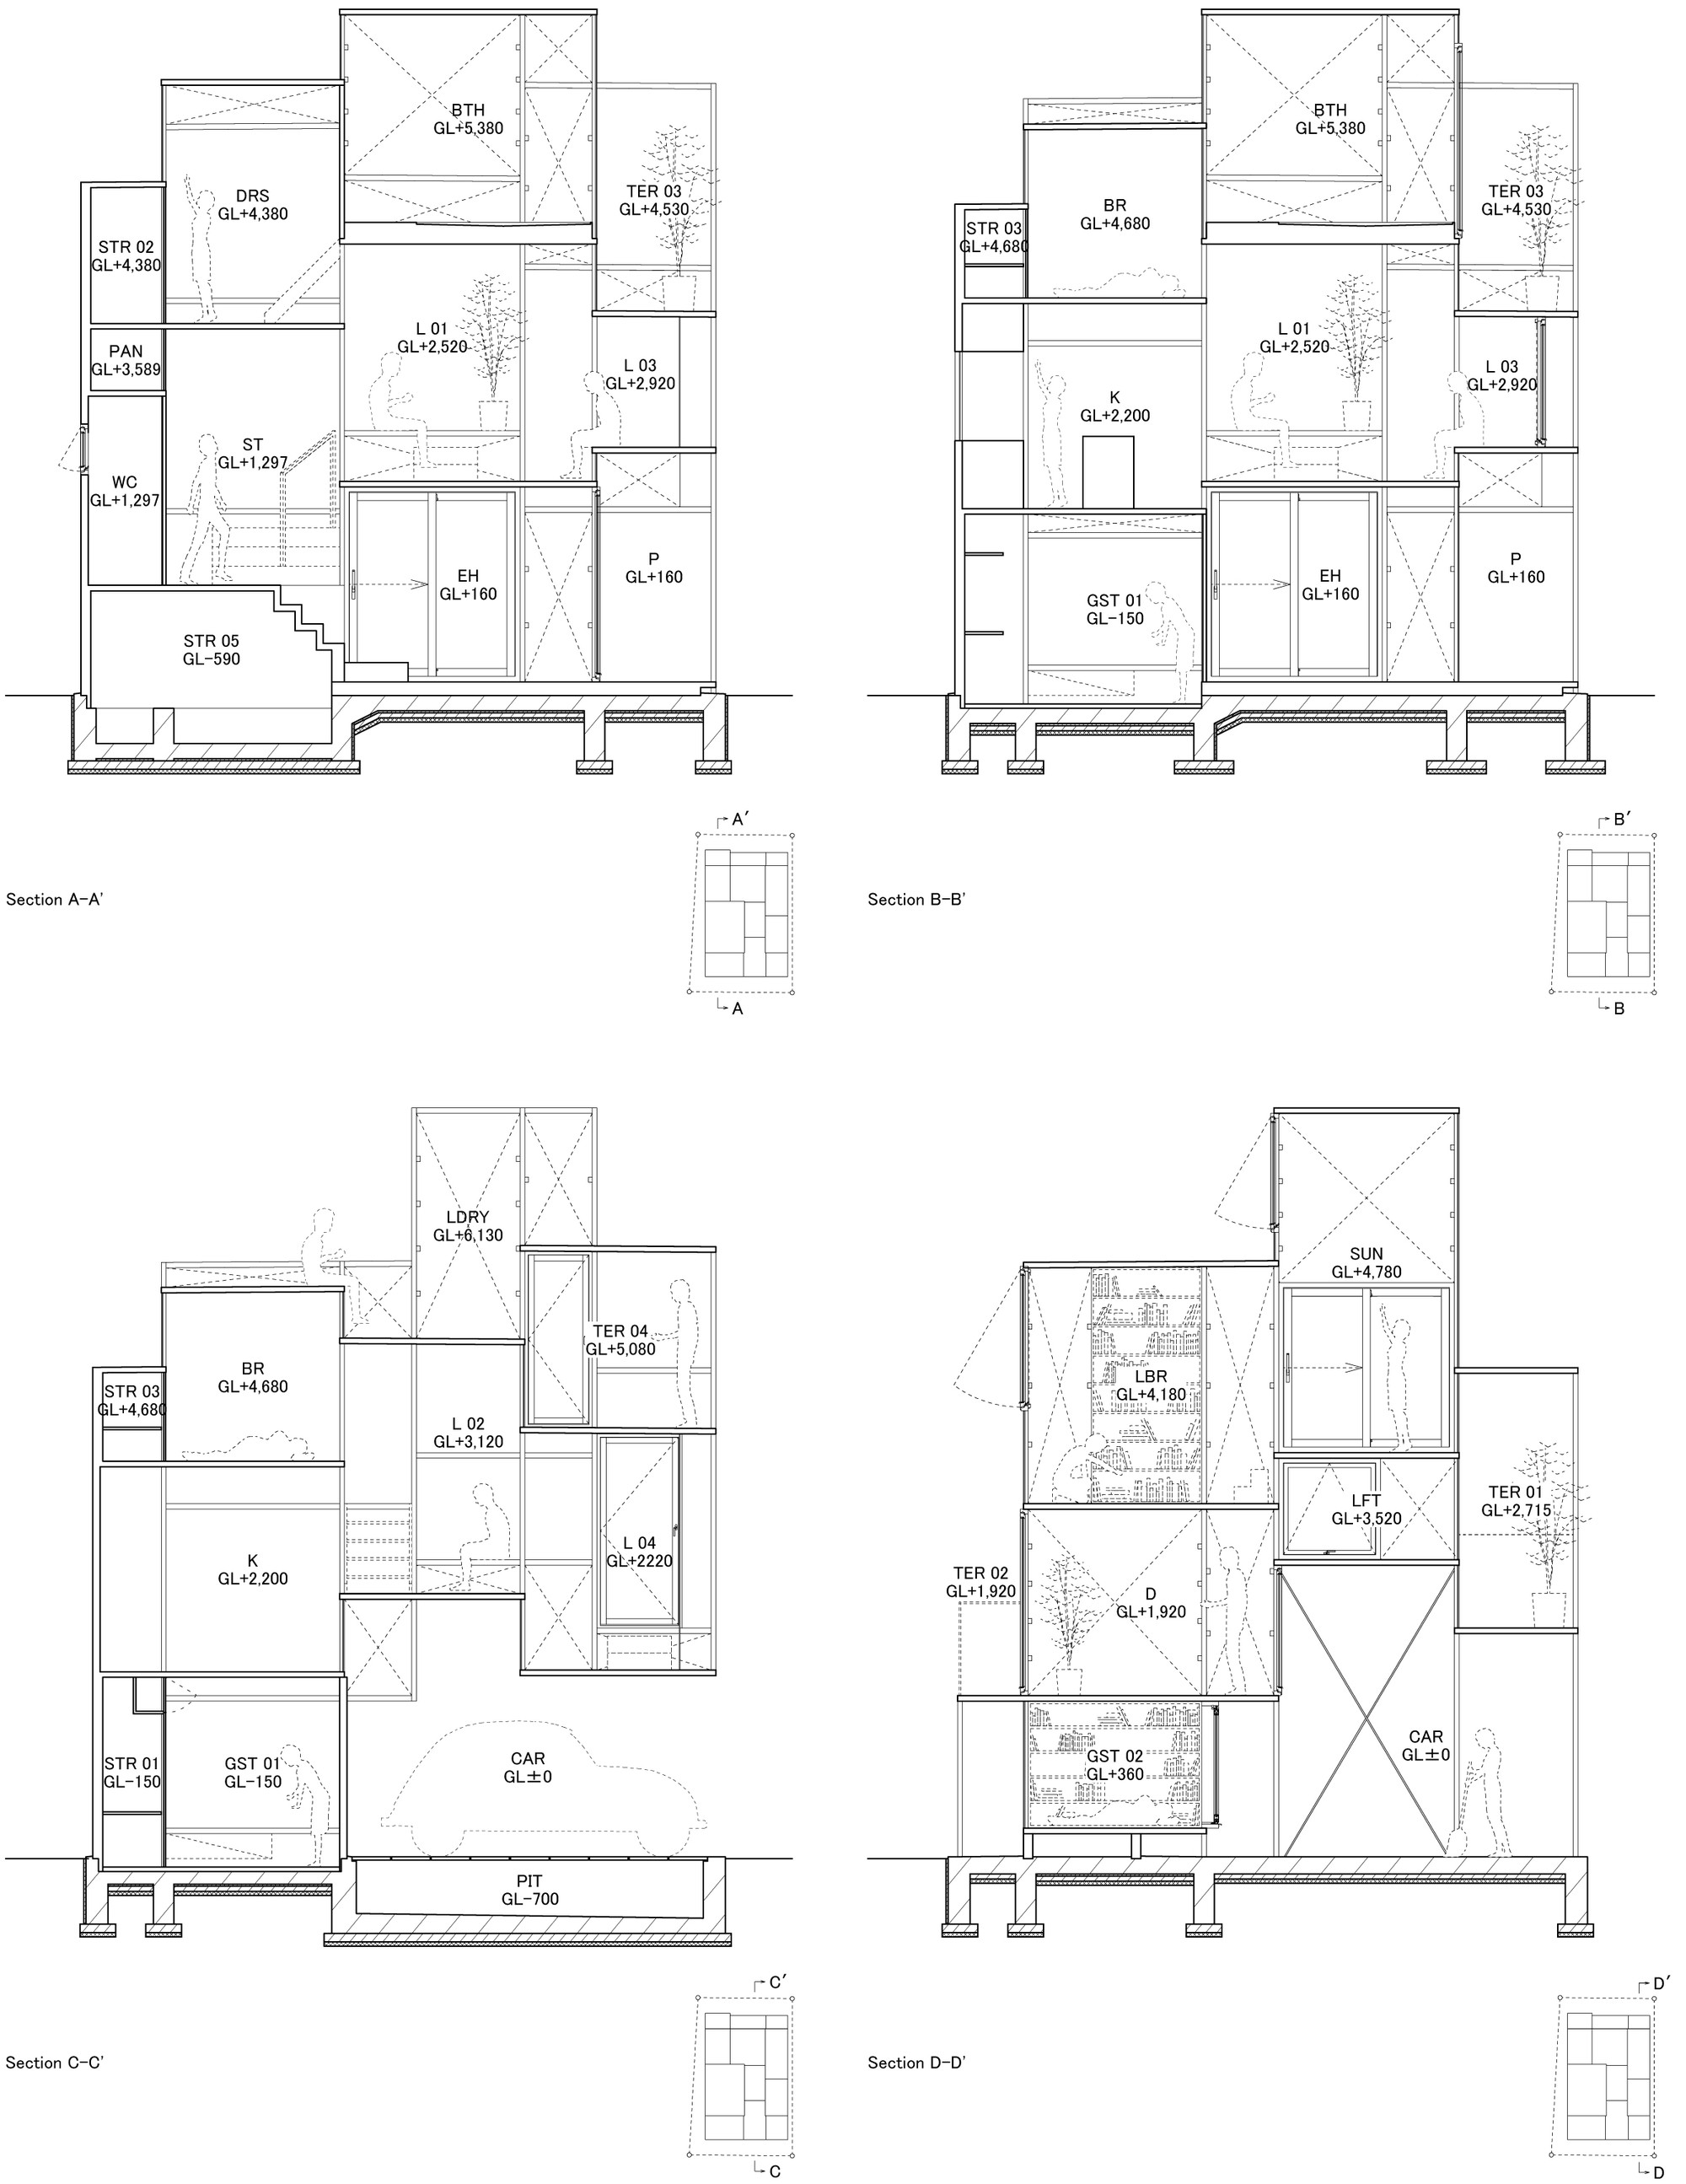 337418197059062679 together with 5hp18sch3 together with Illustrations additionally 50180b1928ba0d49f5001694 House Na Sou Fujimoto Architects Section 03 besides With Diagrams. on diagrams